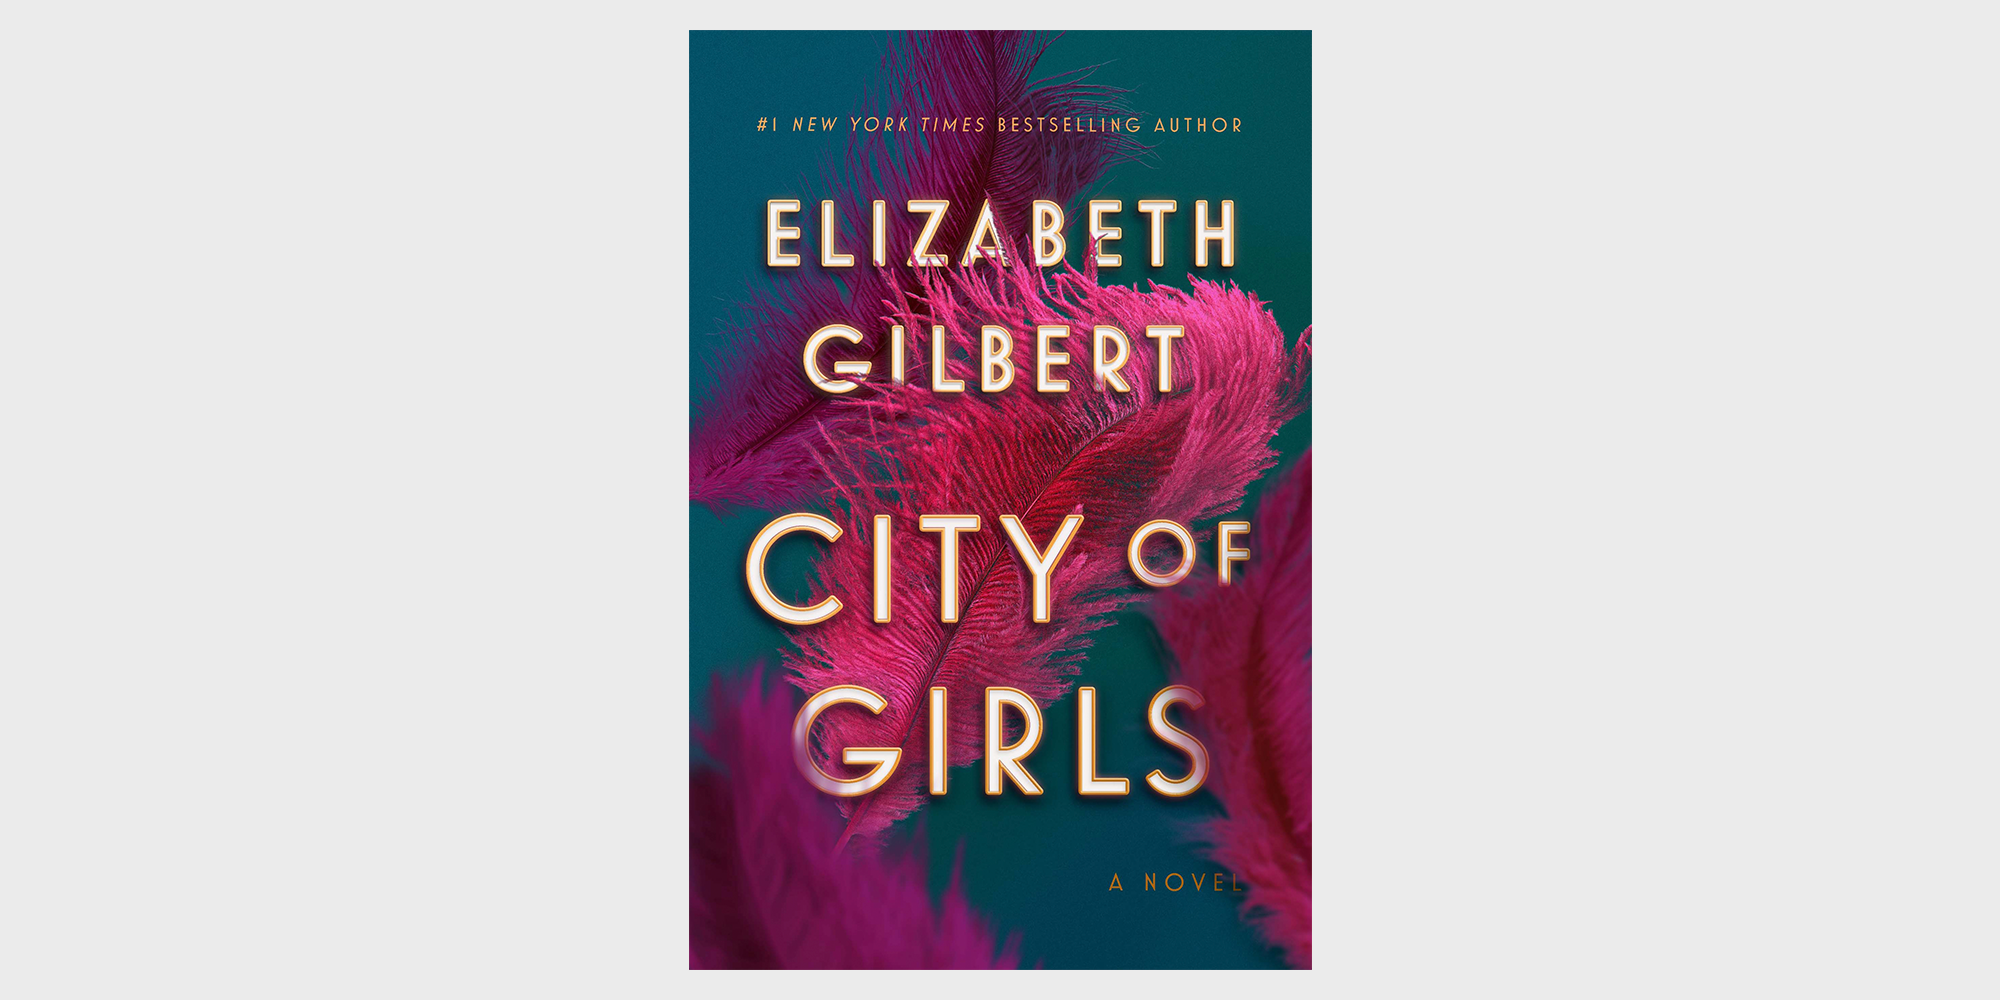 Elizabeth Gilbert's 'City of Girls' Lives Up to the Hype